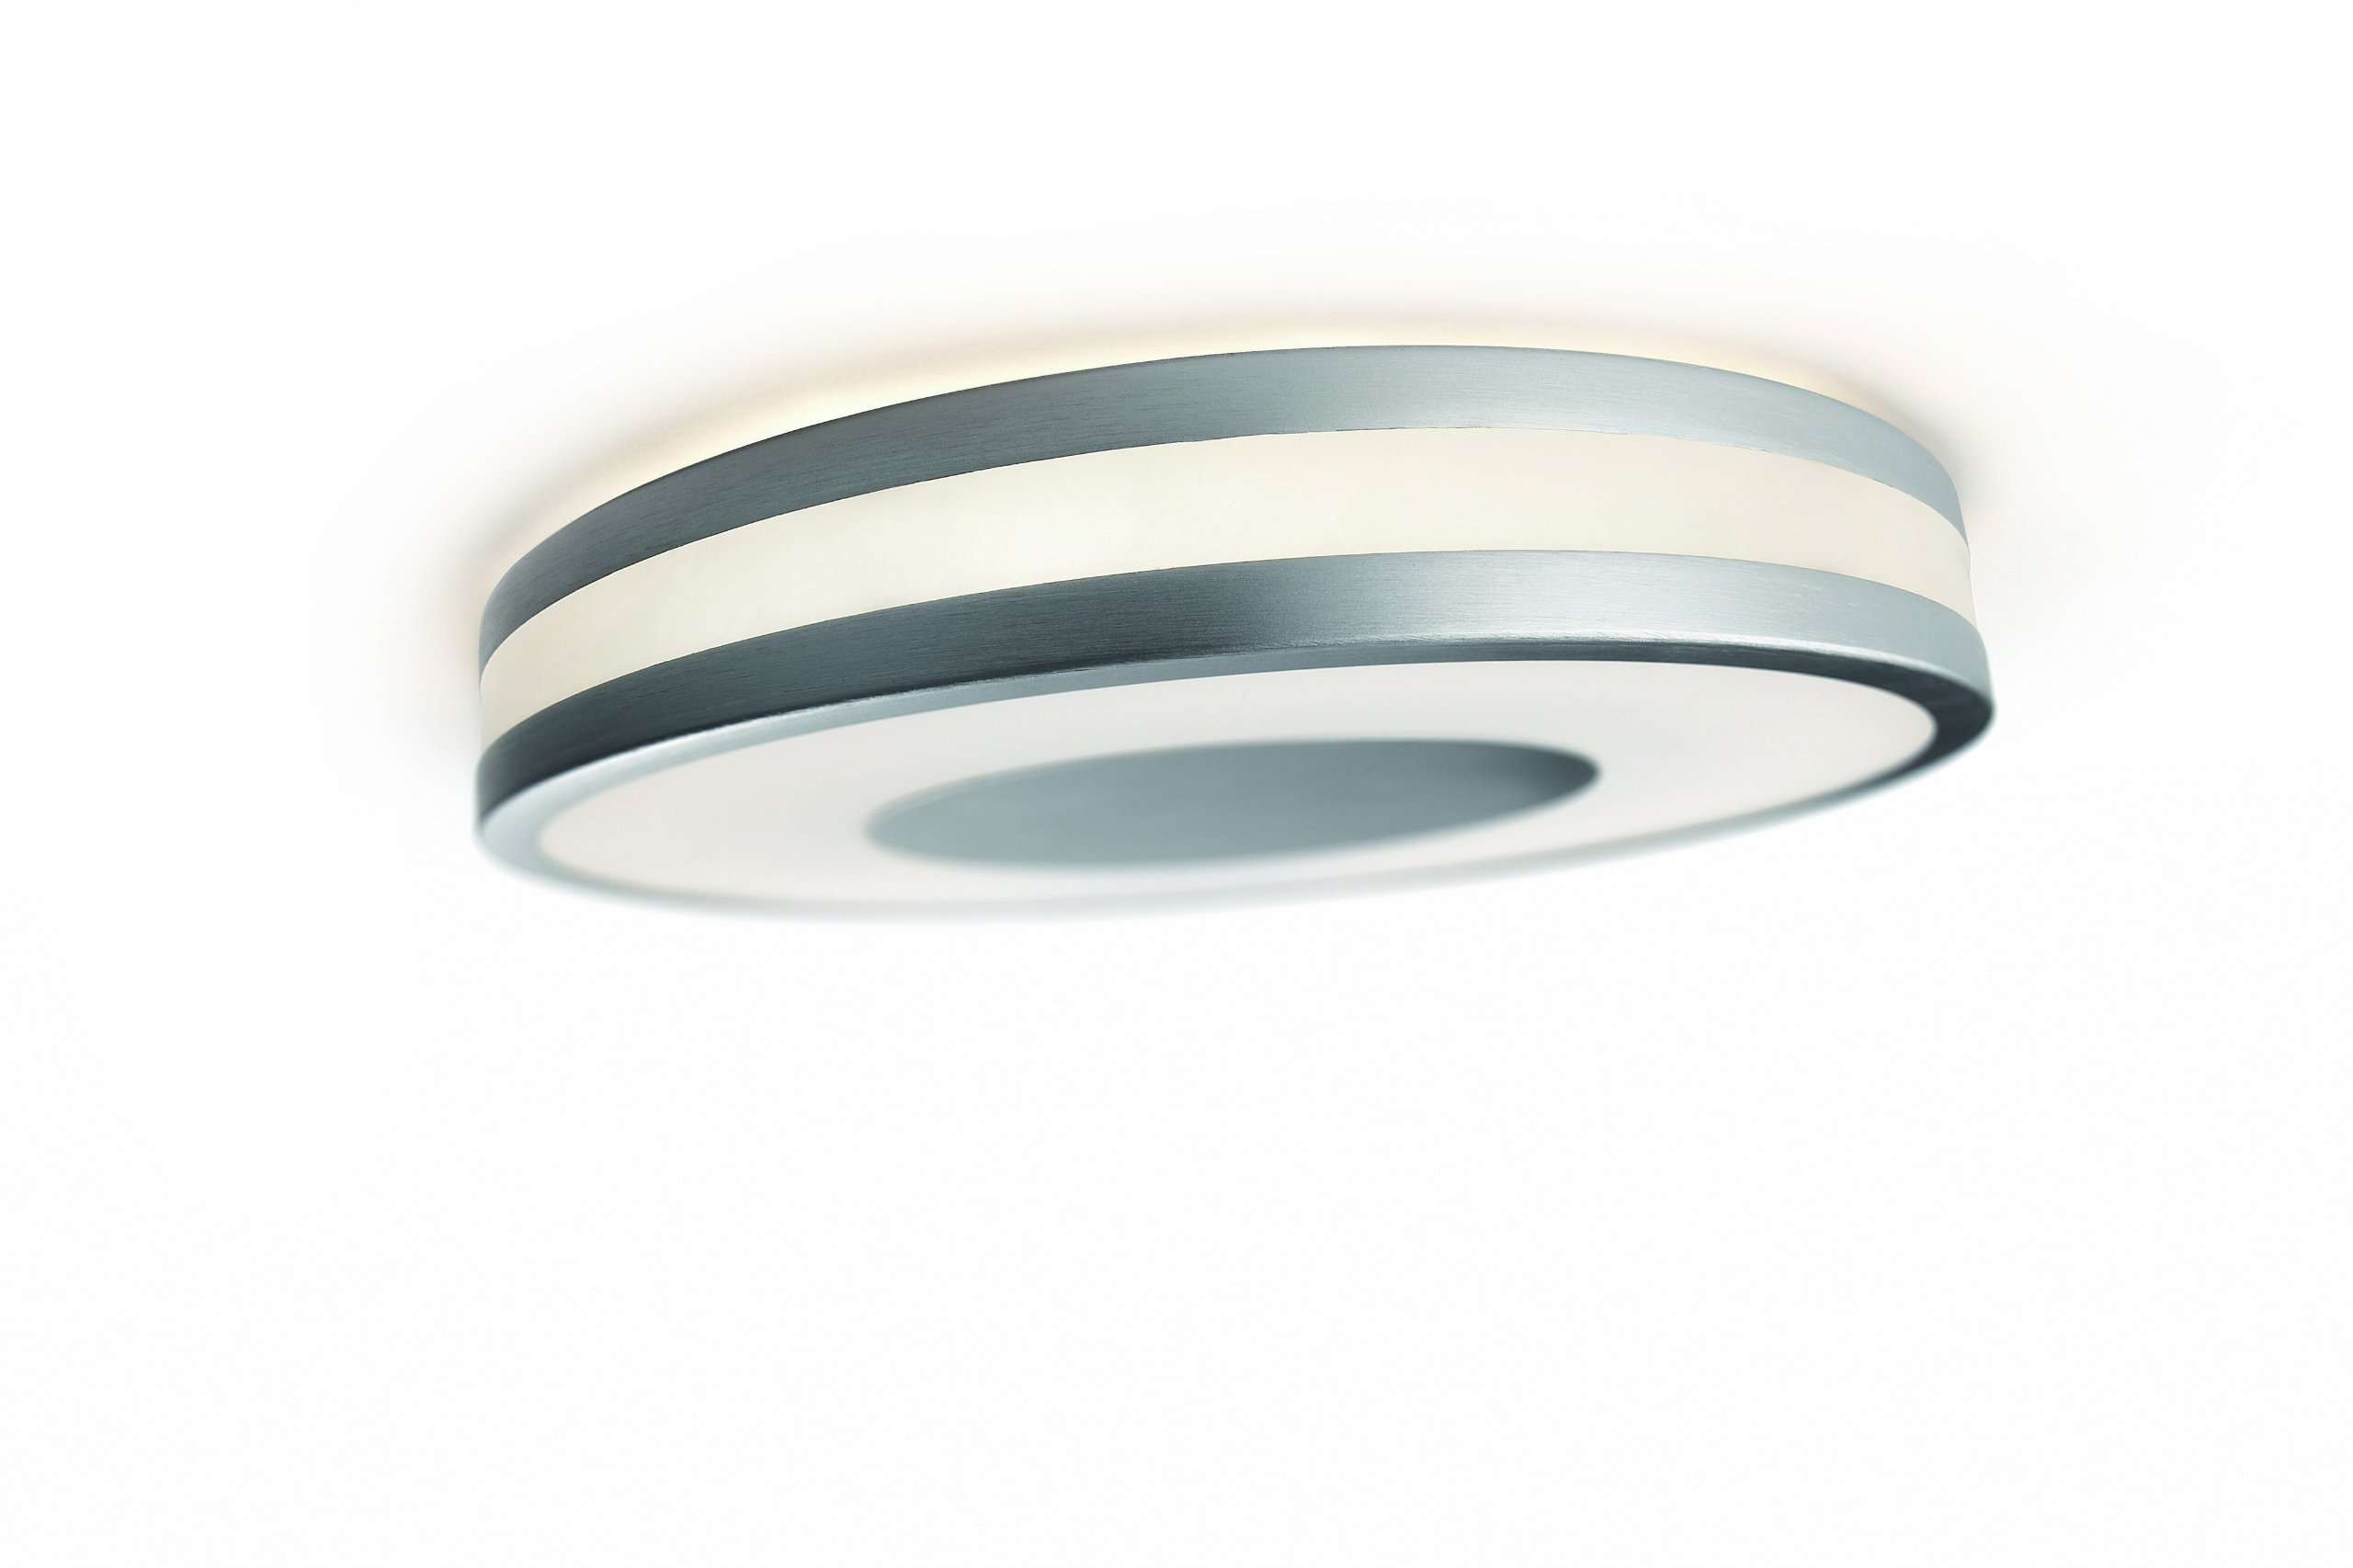 Philips 32610/48/48 Ecomoods Energy Efficient Wall or Ceiling Light with 2 Colored Diffusers, Aluminum